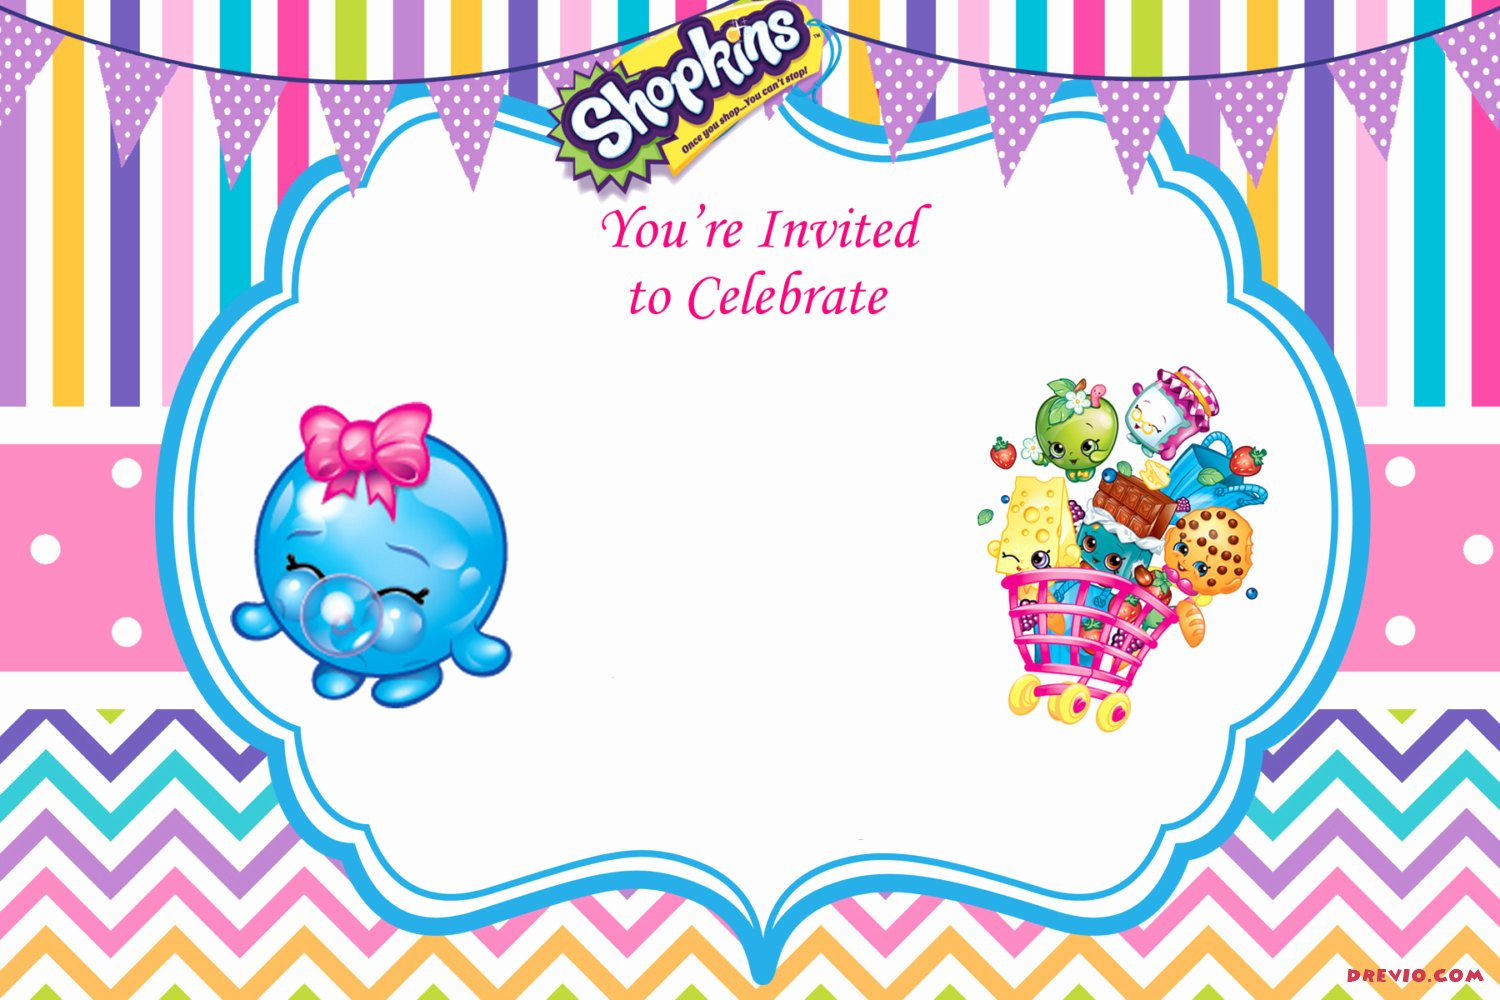 Shopkins Invitations Template Free Beautiful Updated – Free Printable Shopkins Birthday Invitation